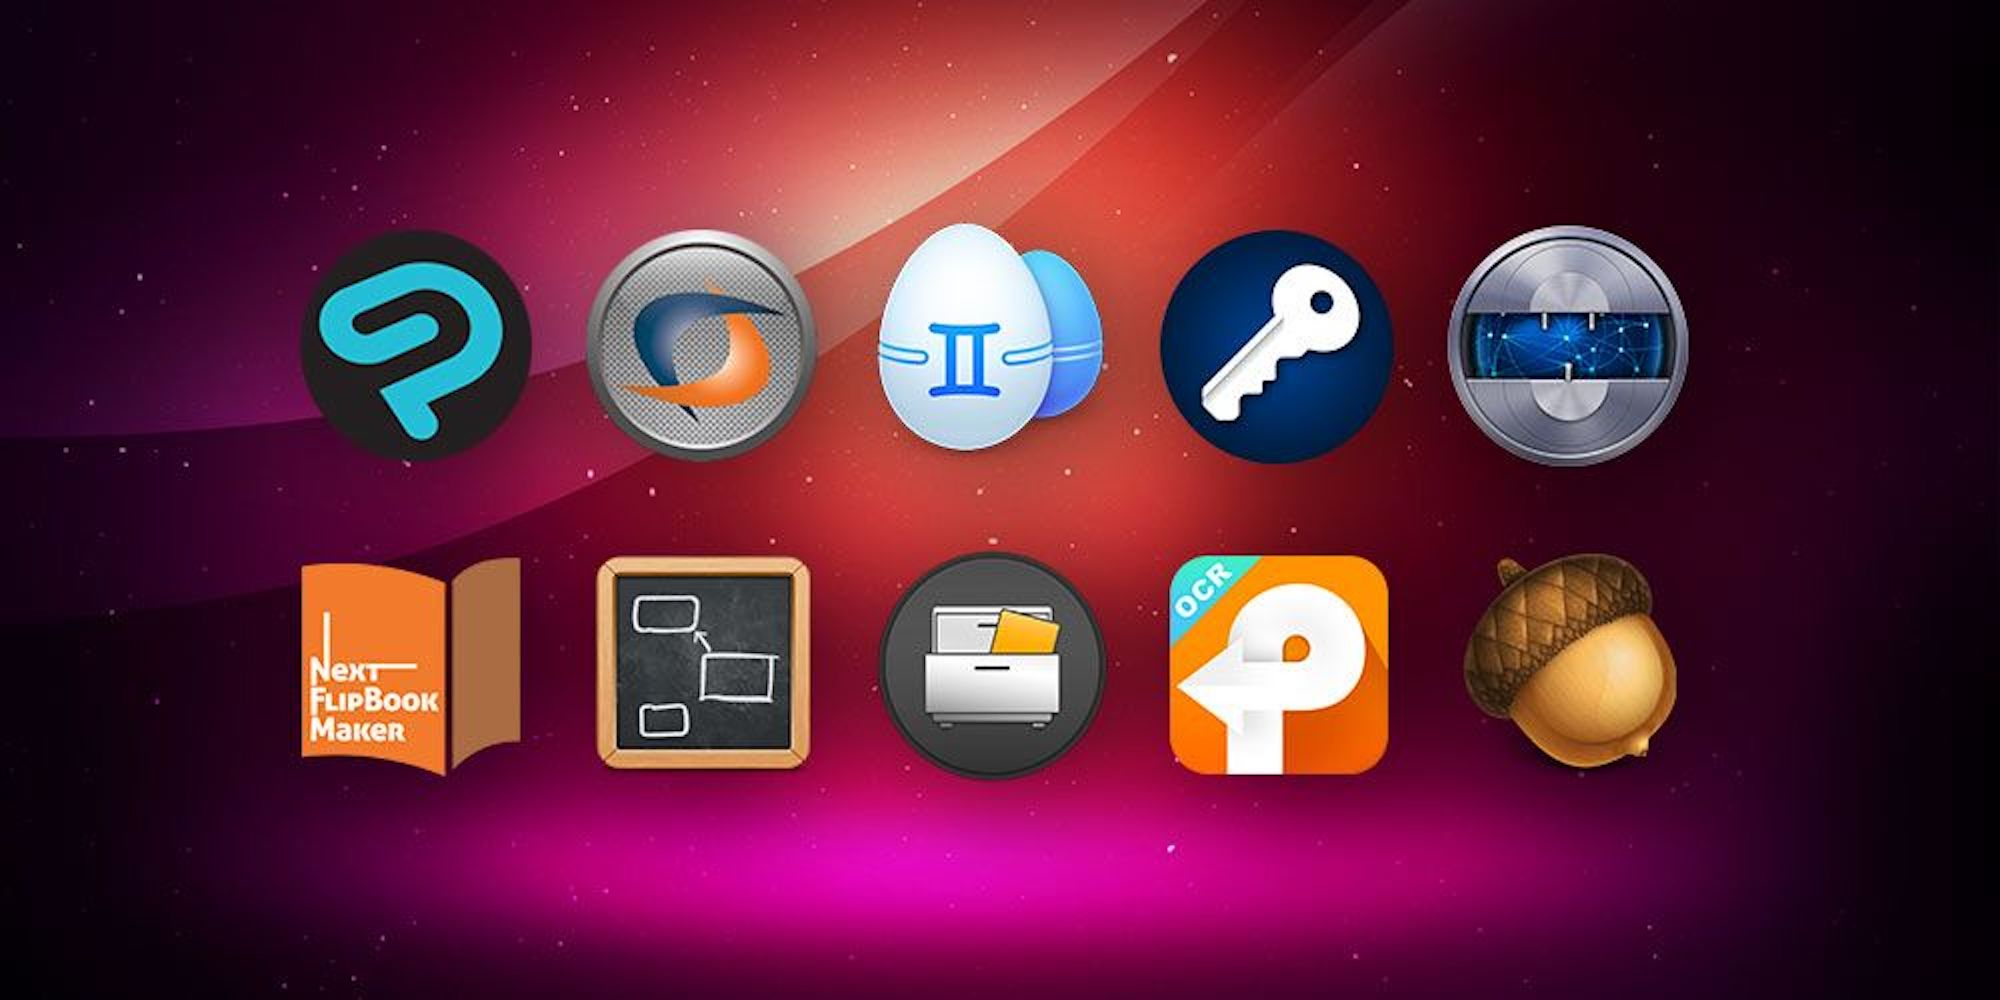 This Black Friday Mac App bundle includes 10 award-winning titles